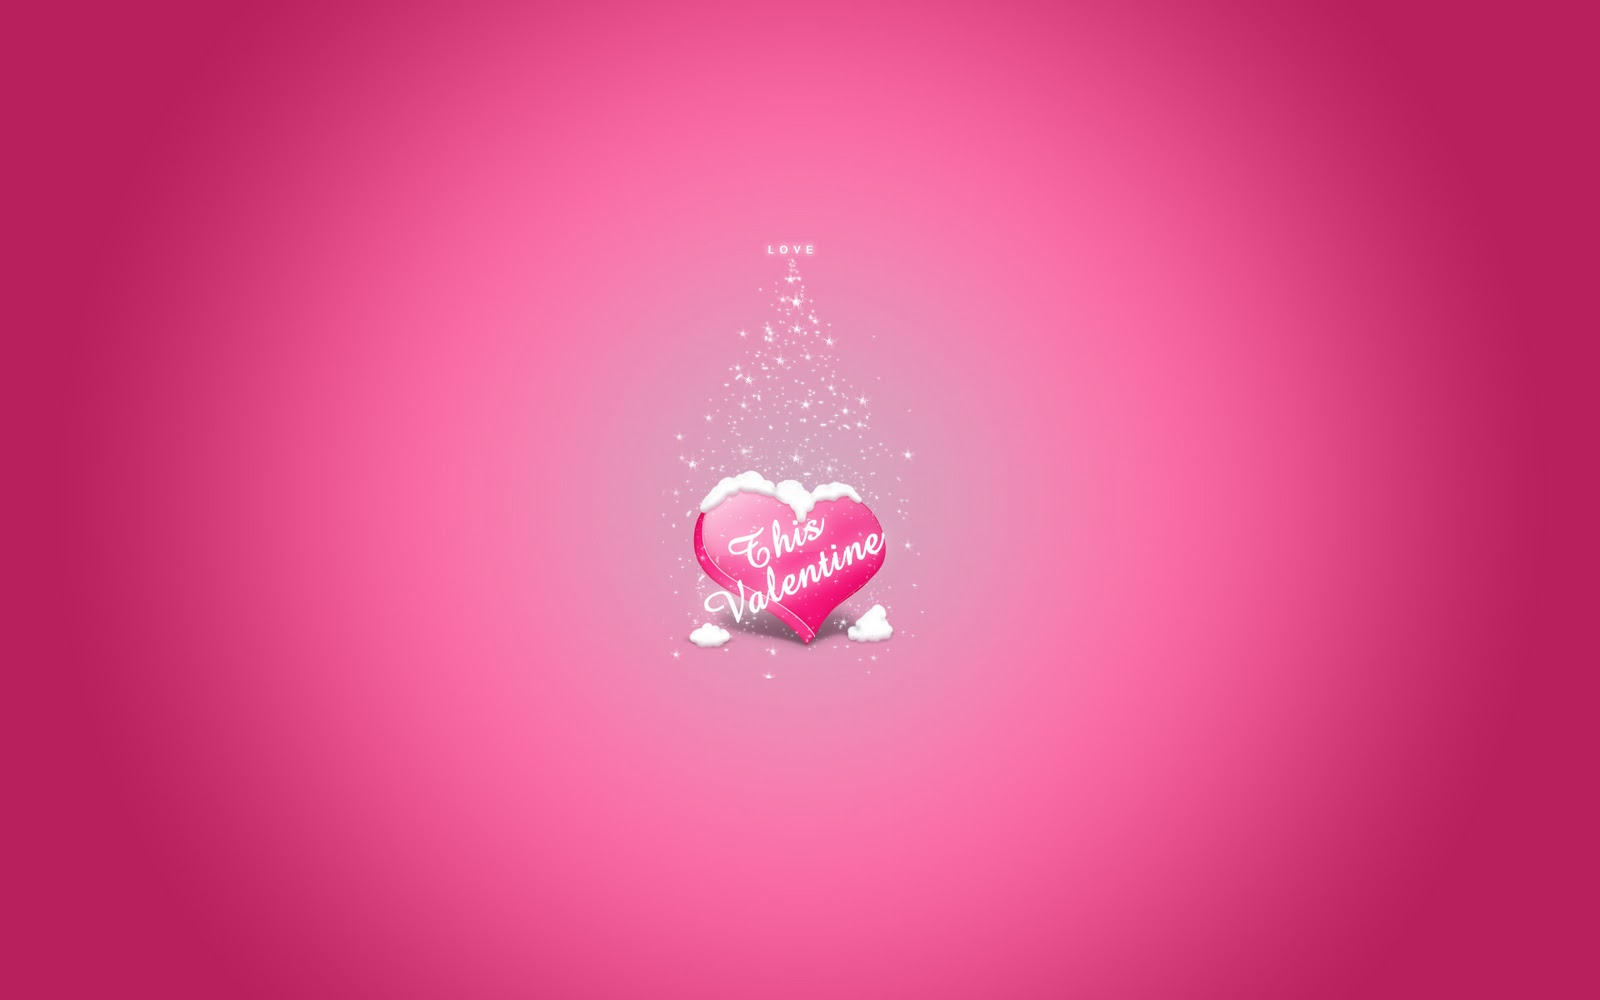 Hd Wallpapers With Love Quotes Roze Achtergronden Hd Wallpapers